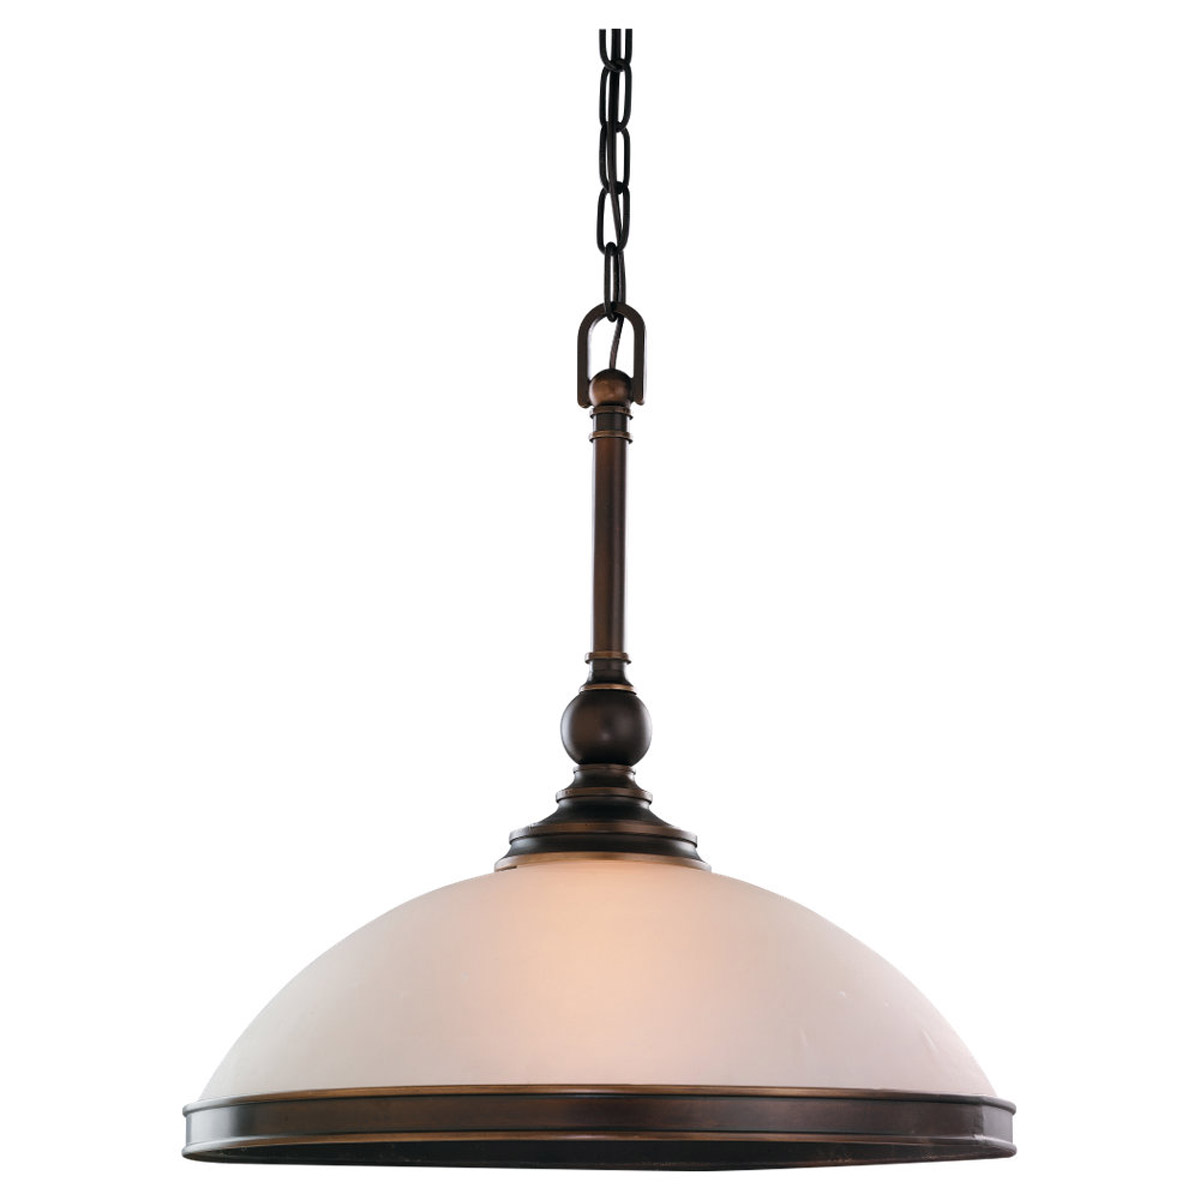 Sea Gull Lighting Warwick 1 Light Pendant in Vintage Bronze 65330-825